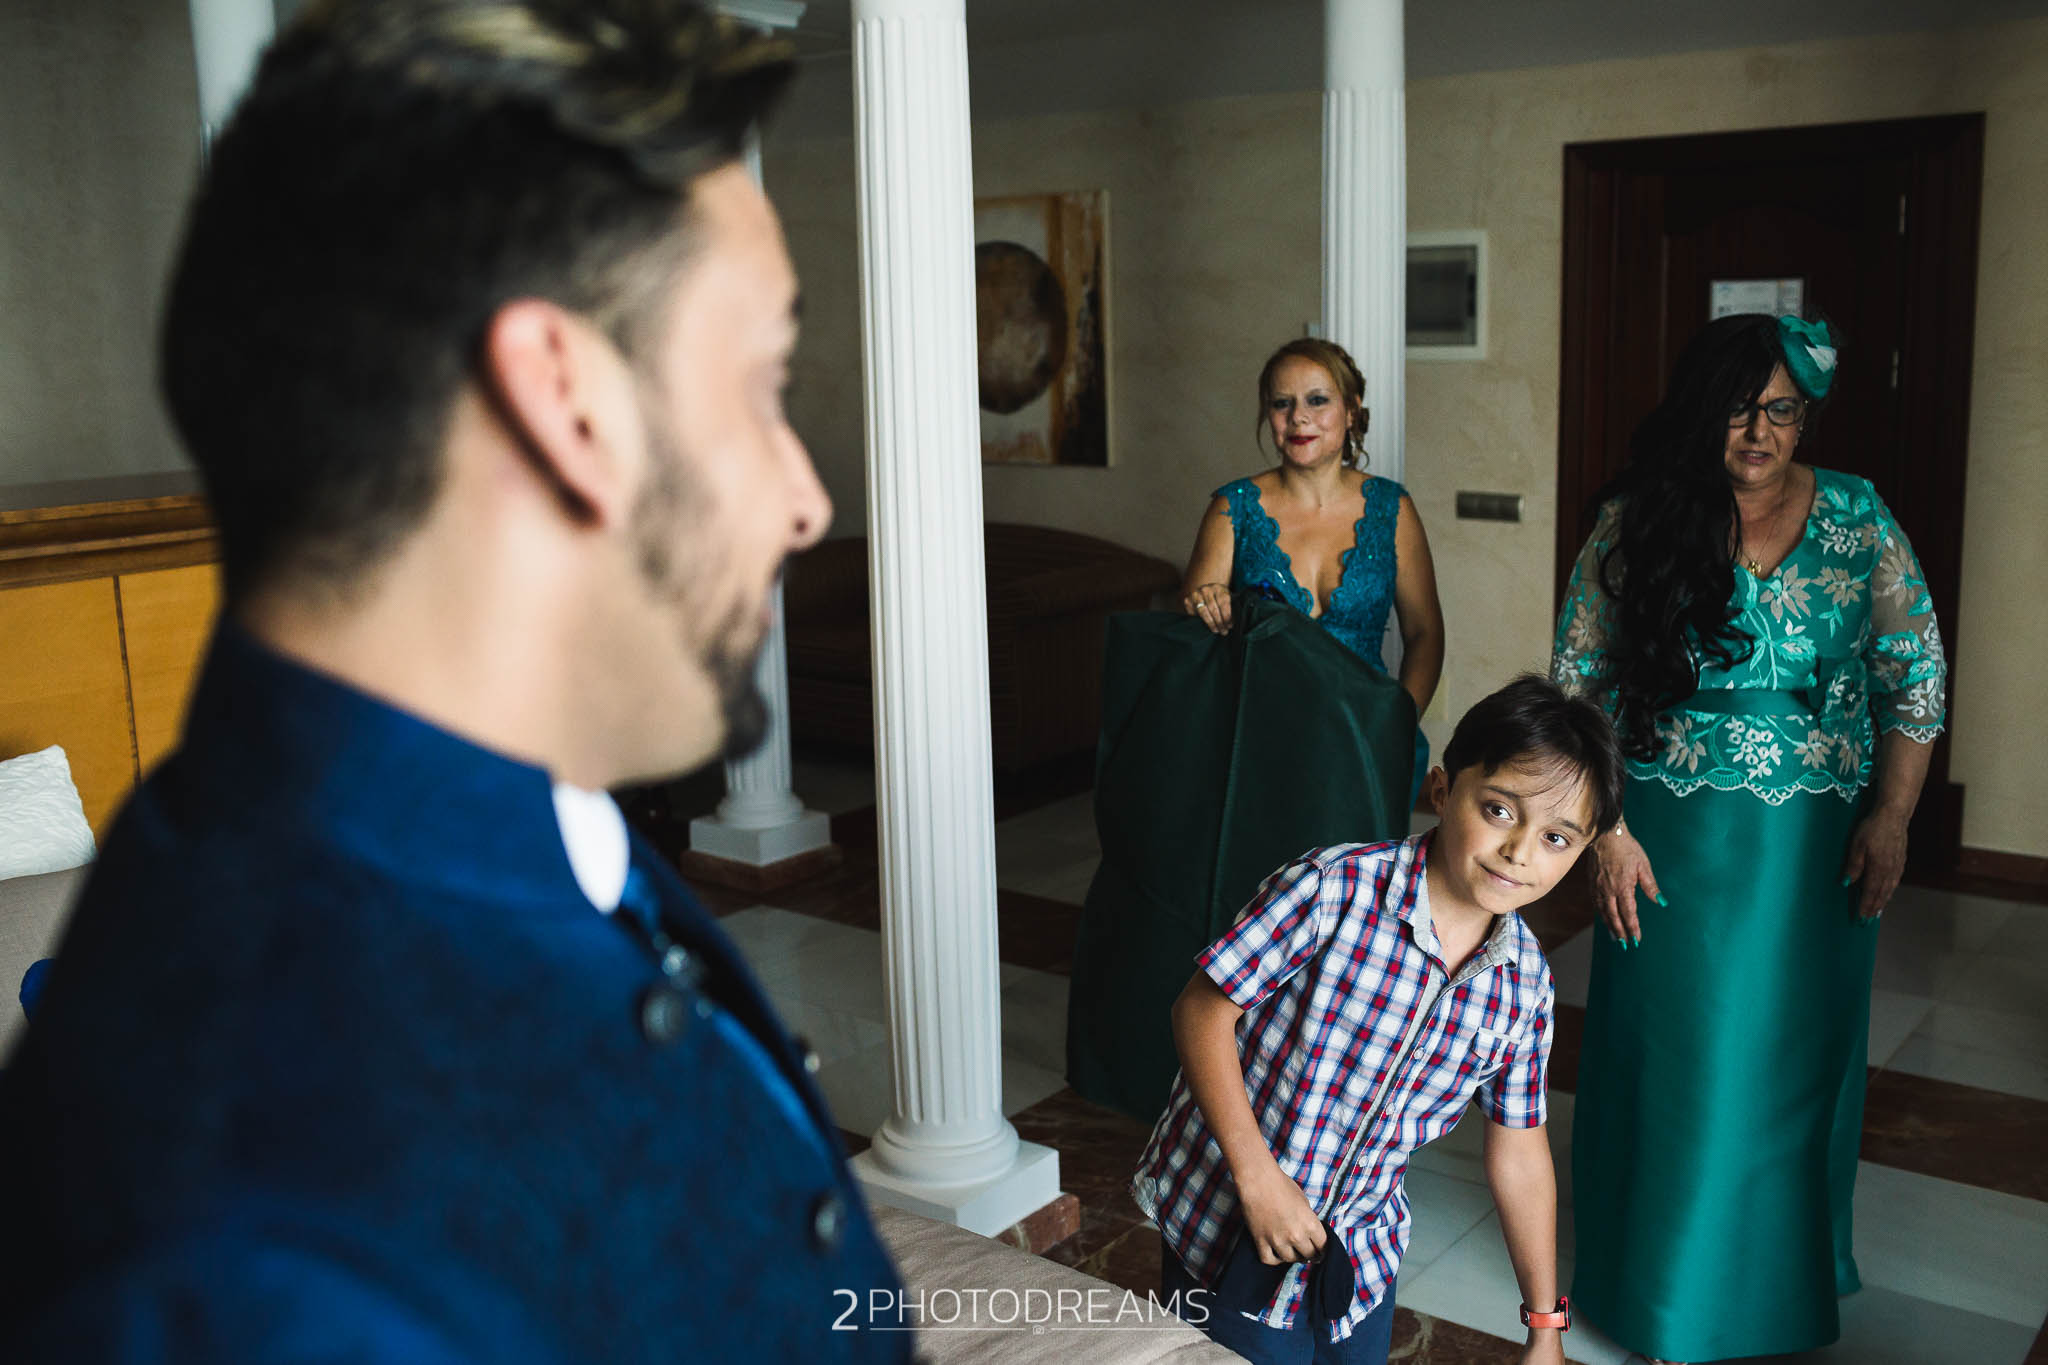 Wedding photographer Waterton Park Hotel groom